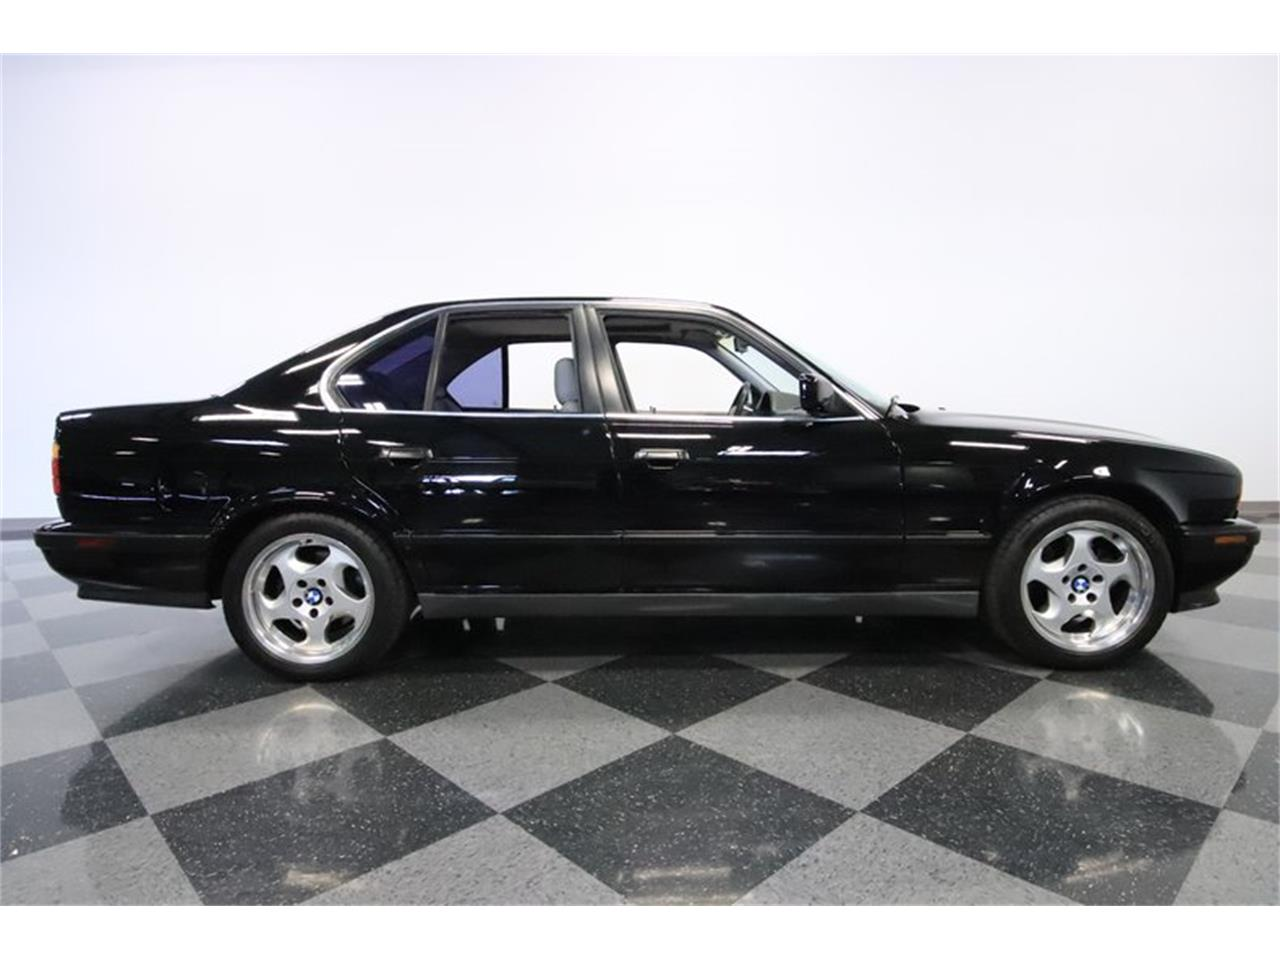 Large Picture of '91 BMW M5 located in Mesa Arizona - $31,995.00 Offered by Streetside Classics - Phoenix - PUPZ